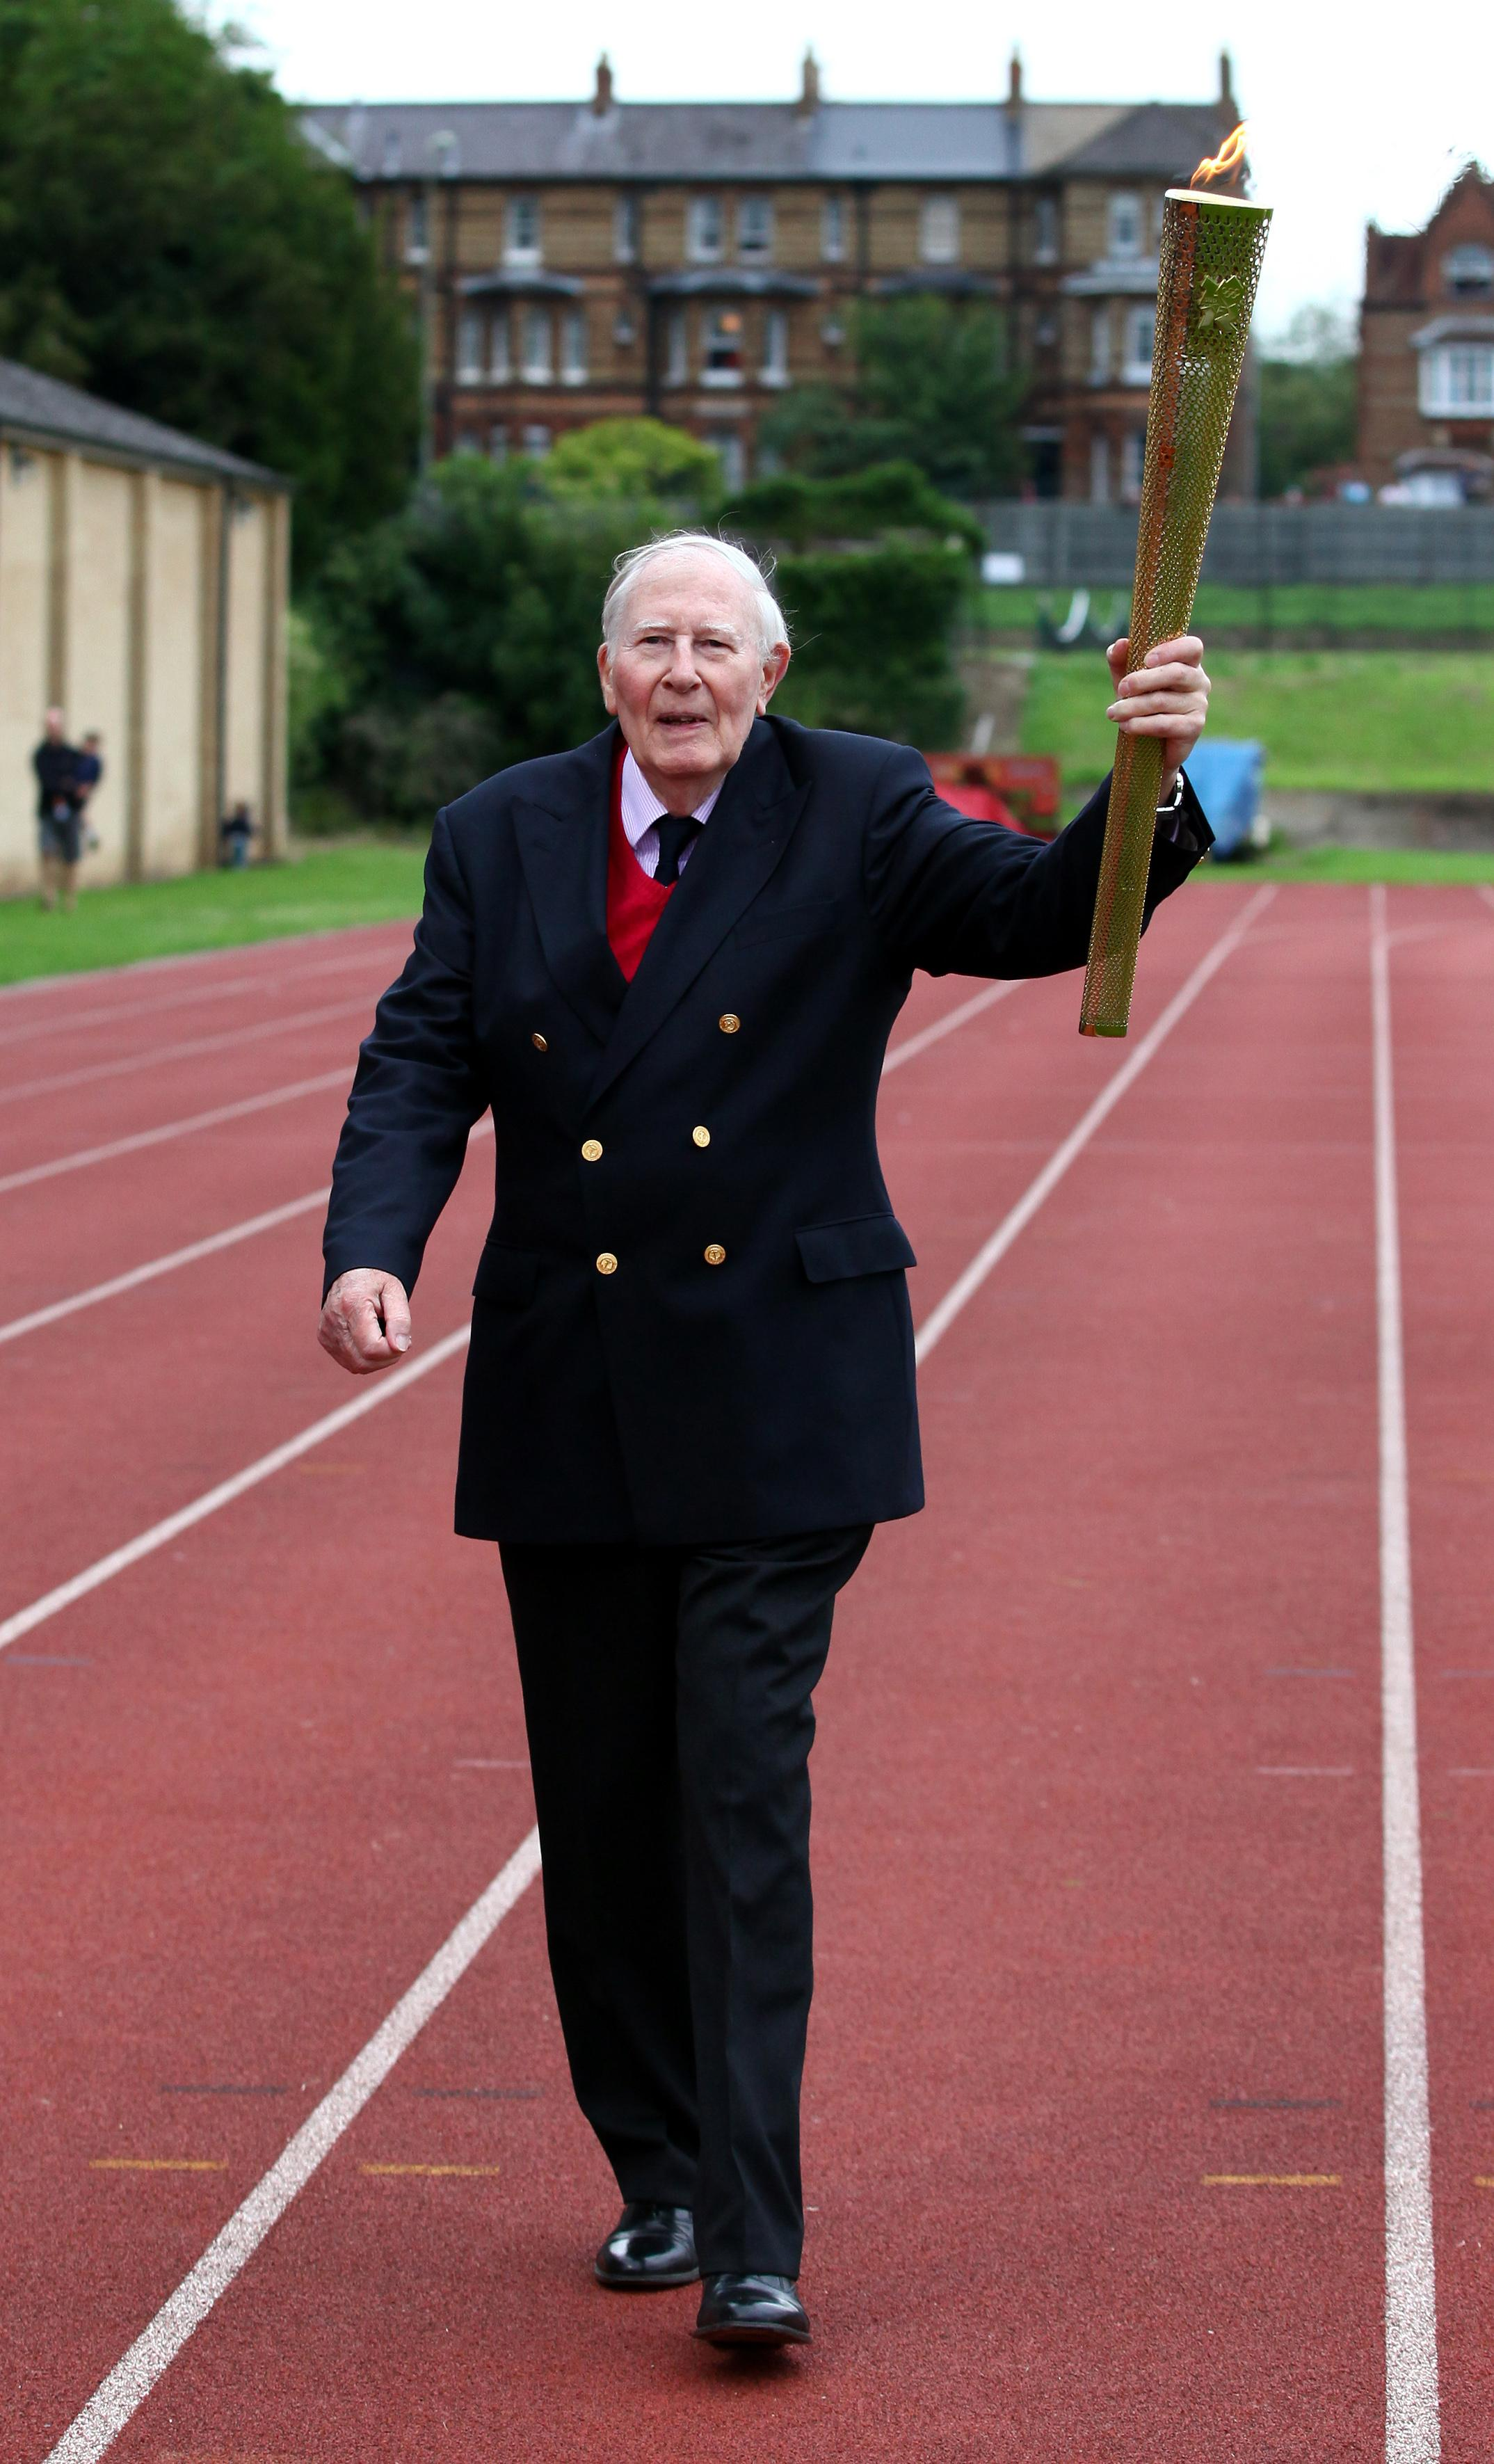 Sir Roger had a stint with the London Olympic flame on the running track at Iffley Road Stadium, Oxford where he broke the record